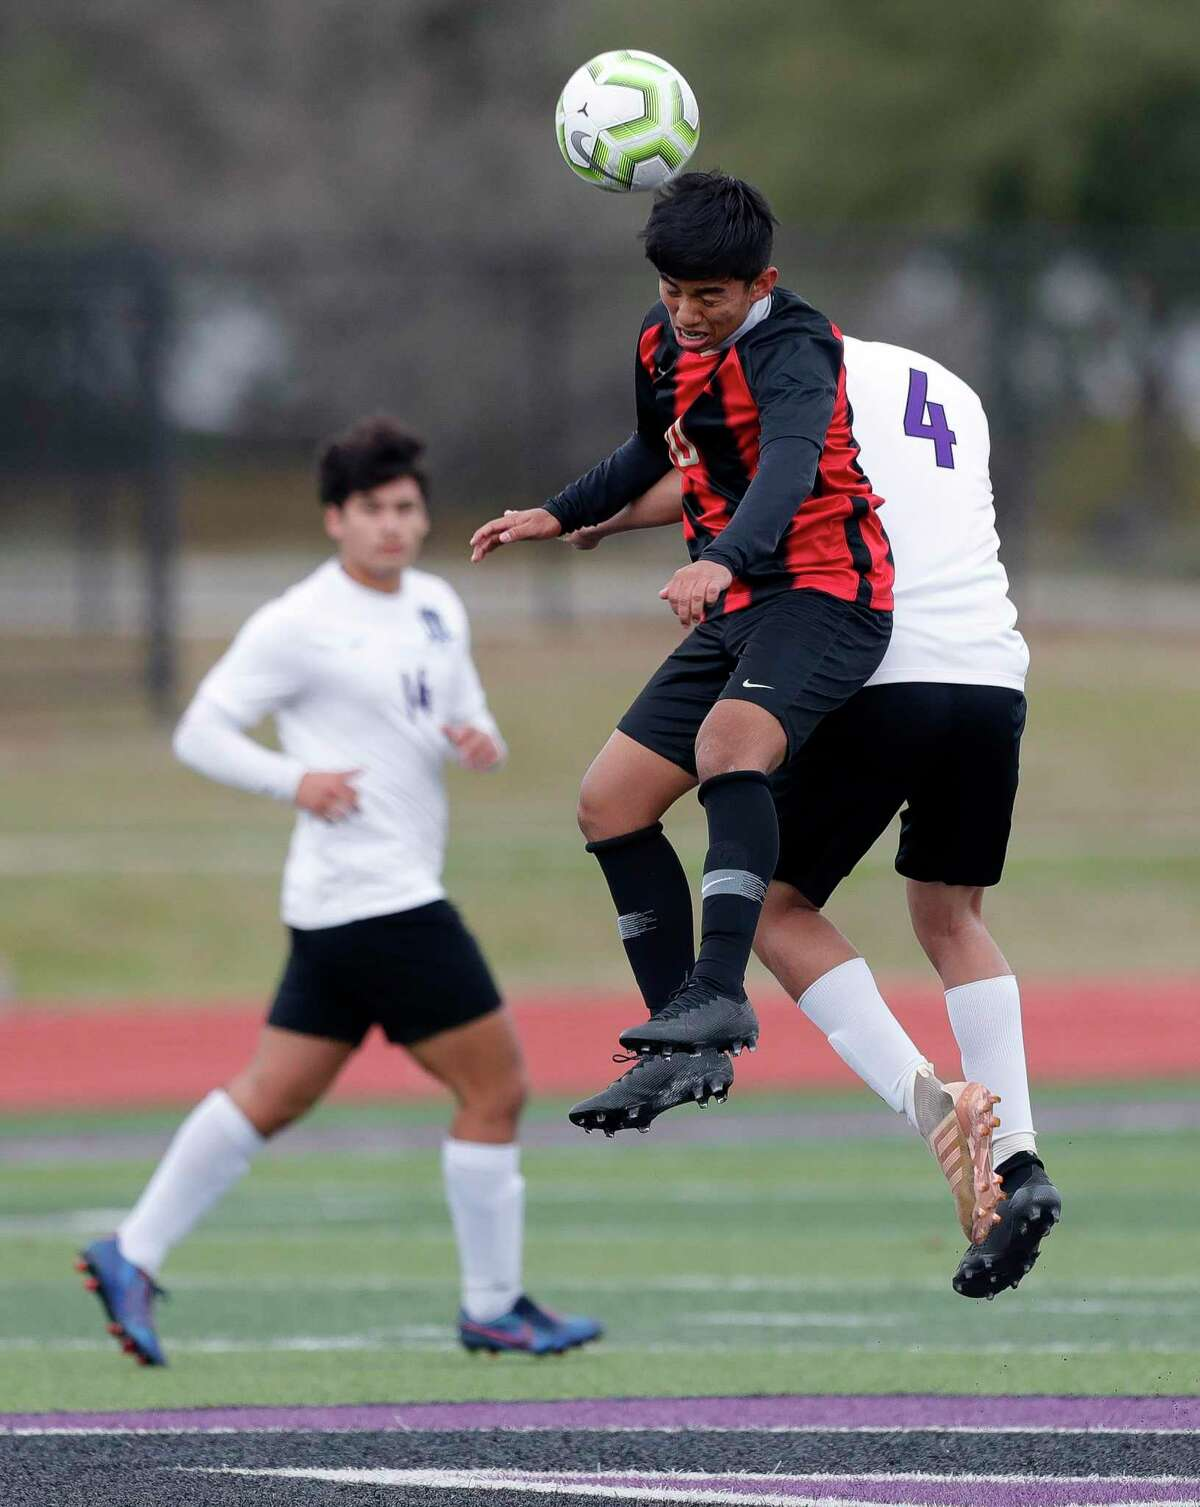 Porter's Jovany Garcia (10) heads the ball against Willis' Byron Rocha (4) in the first period of a match during the Wildkat Showcase soccer tournament at Berton A. Yates Stadium, Friday, Jan. 8, 2021, in Willis.